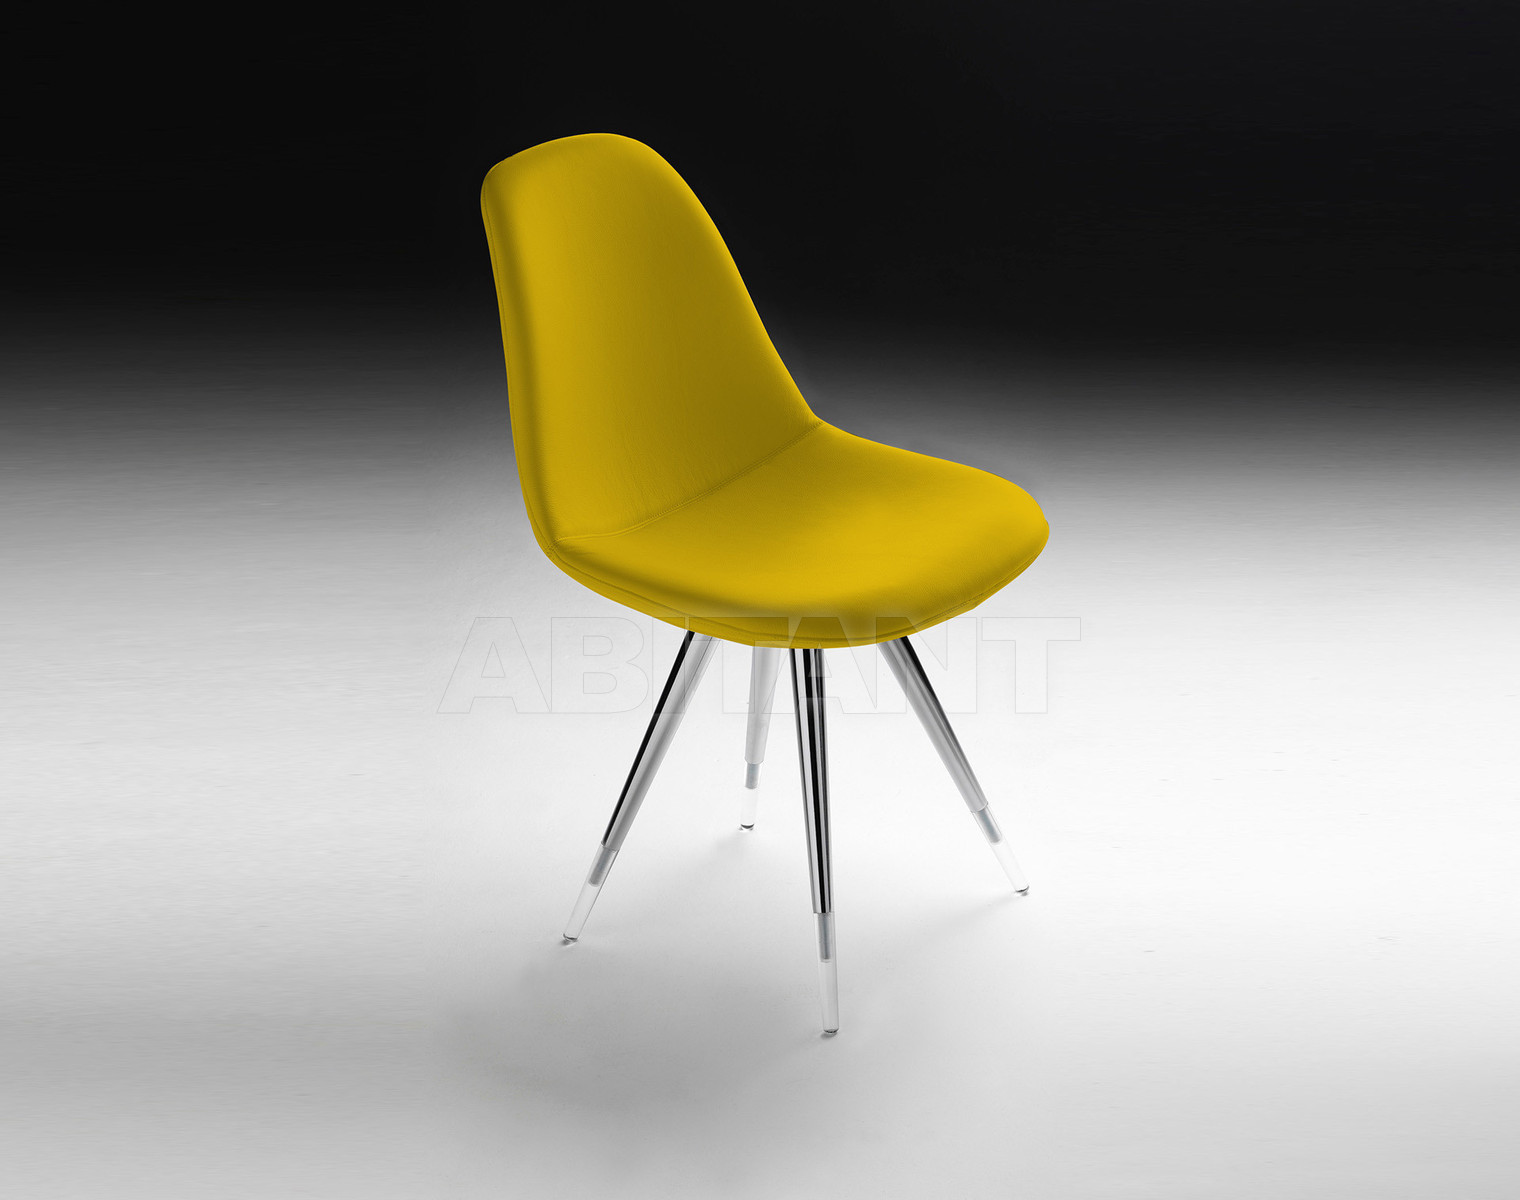 Купить Стул Kubikoff Gino Lemson & Ruud Bos Angel'POP'Chair' 08